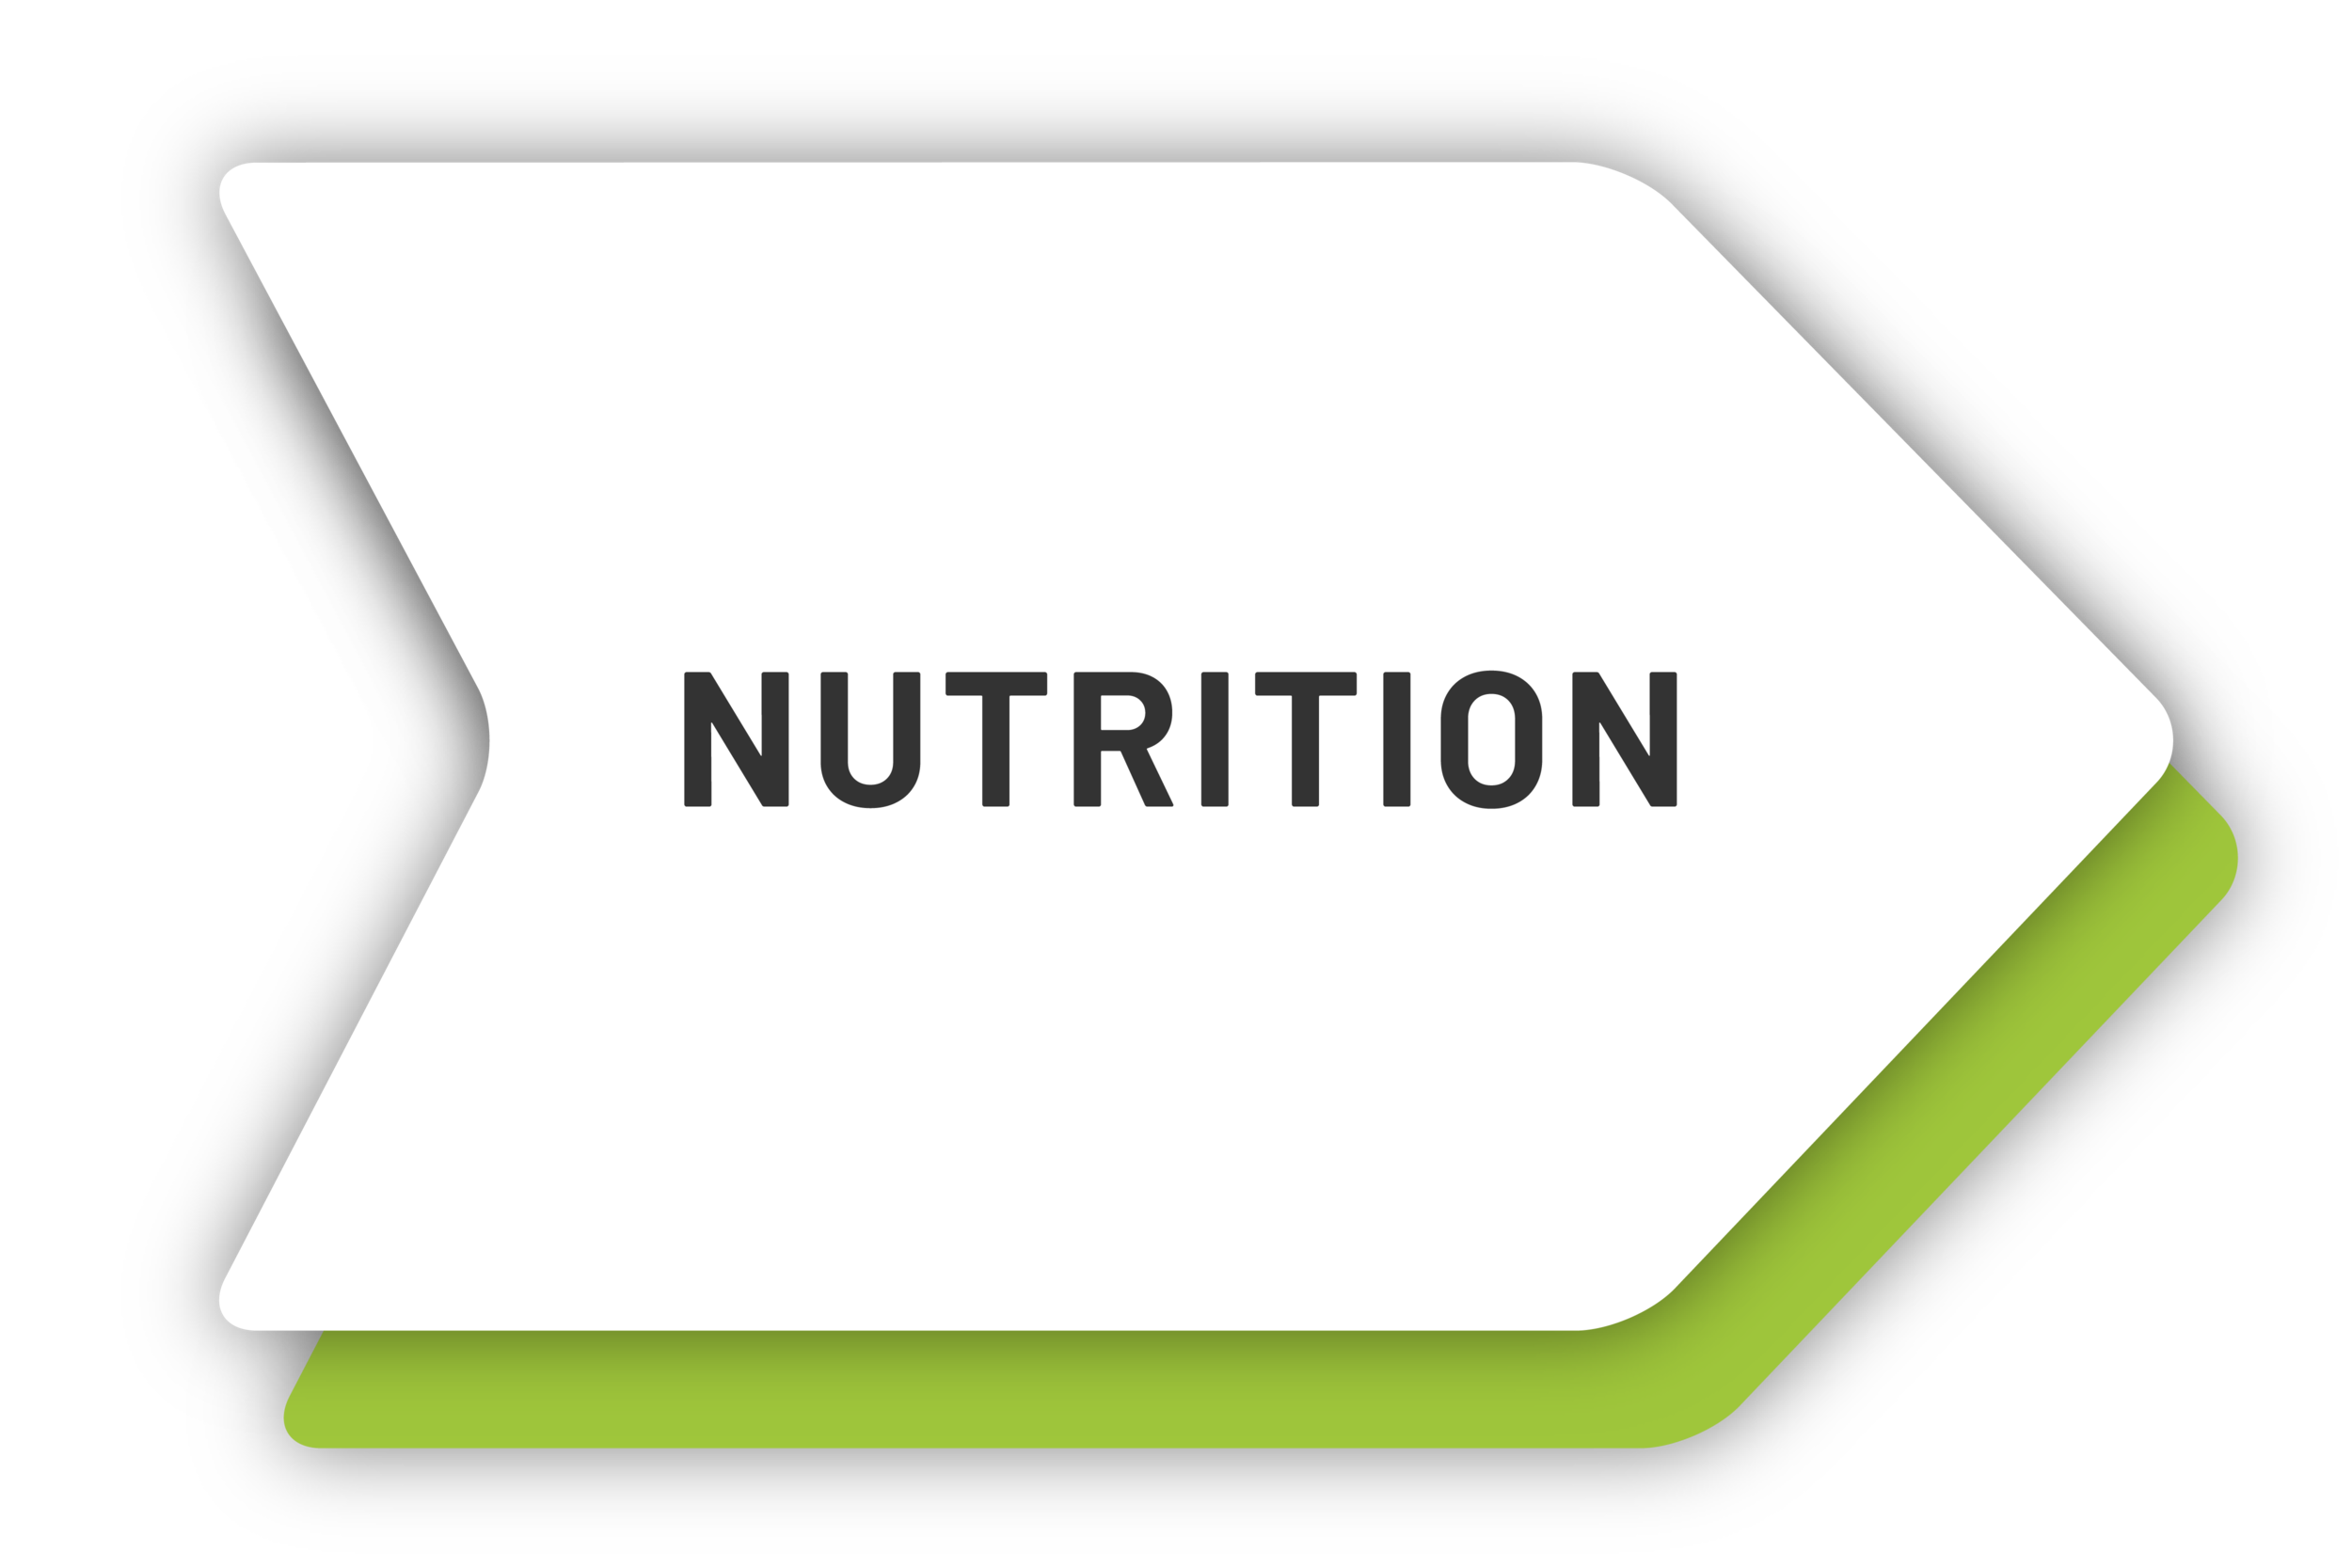 Rehab icons_Nutrition.png